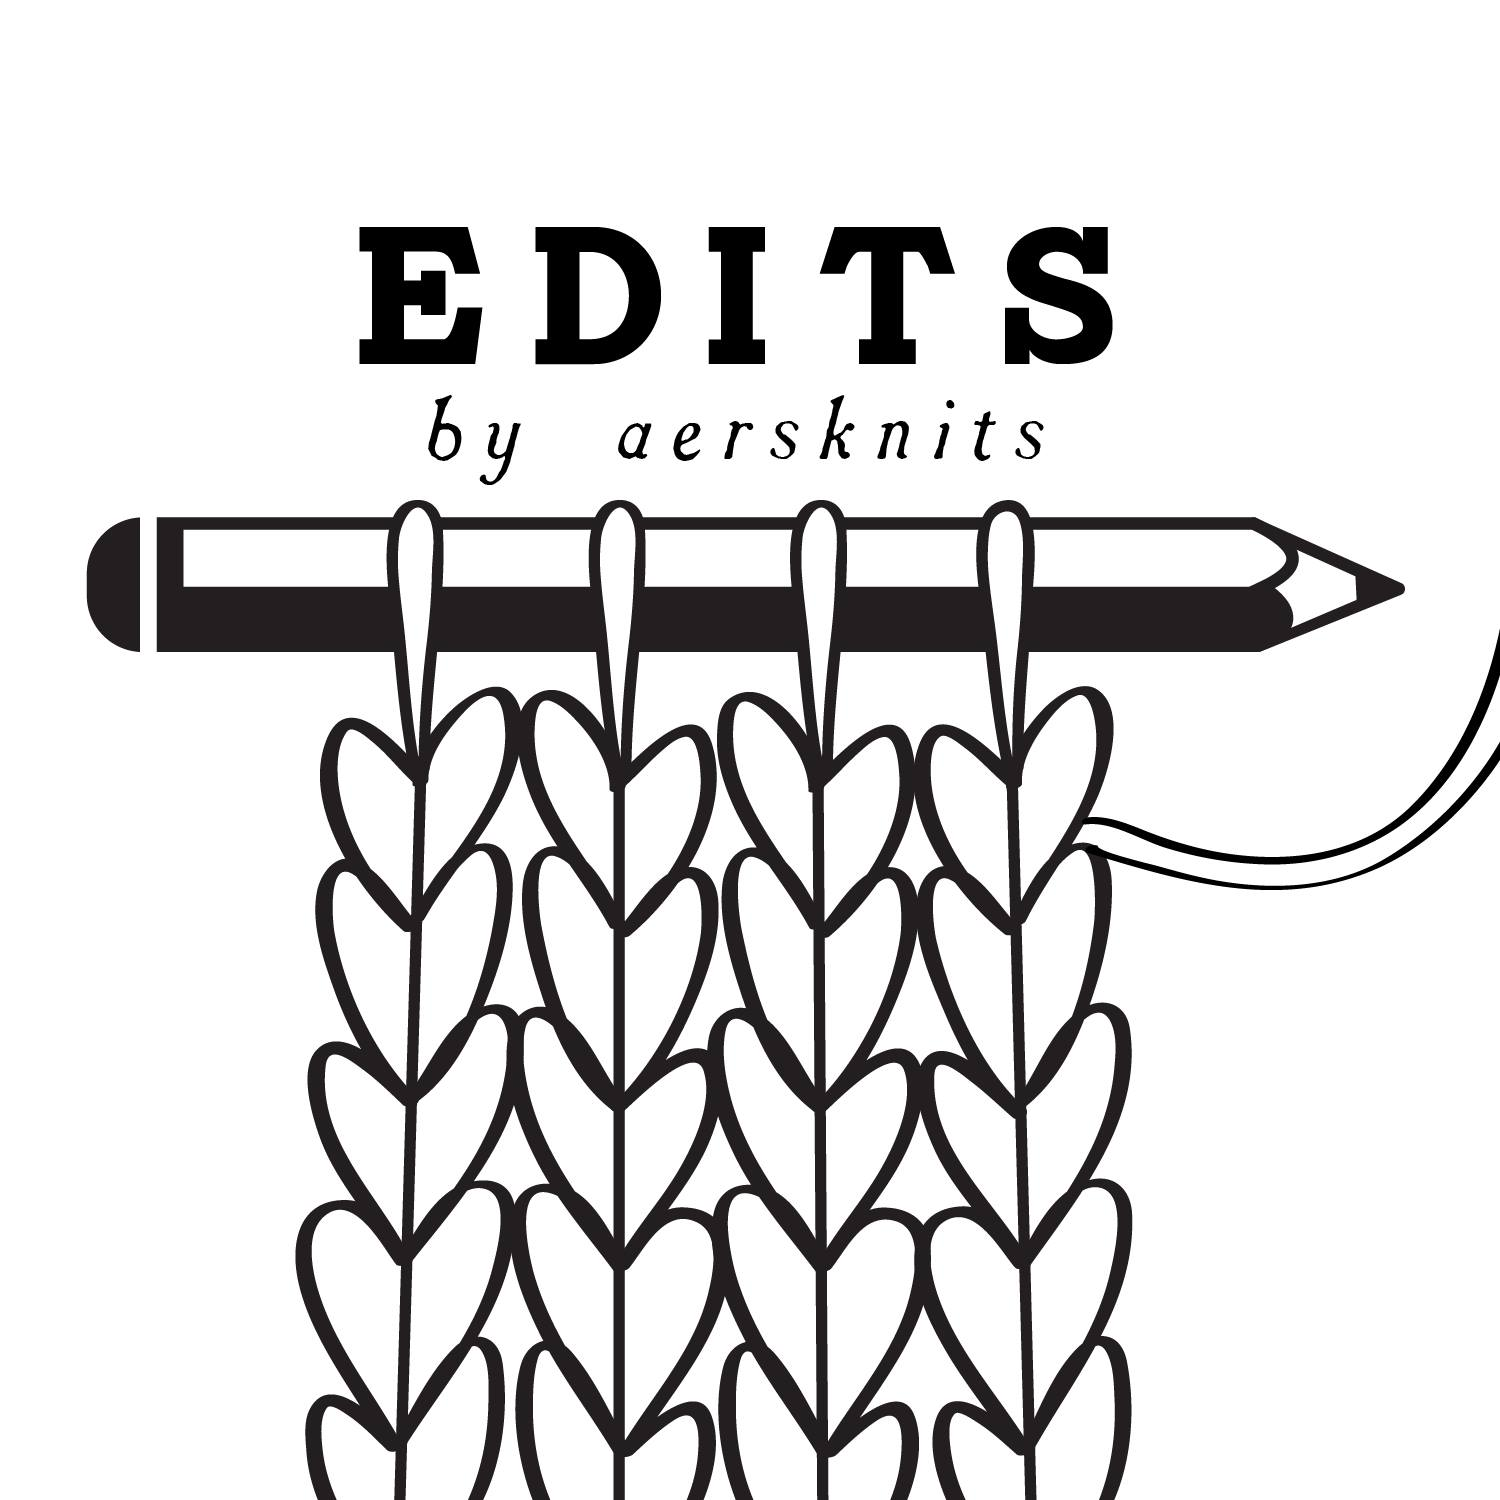 Technical editing services online